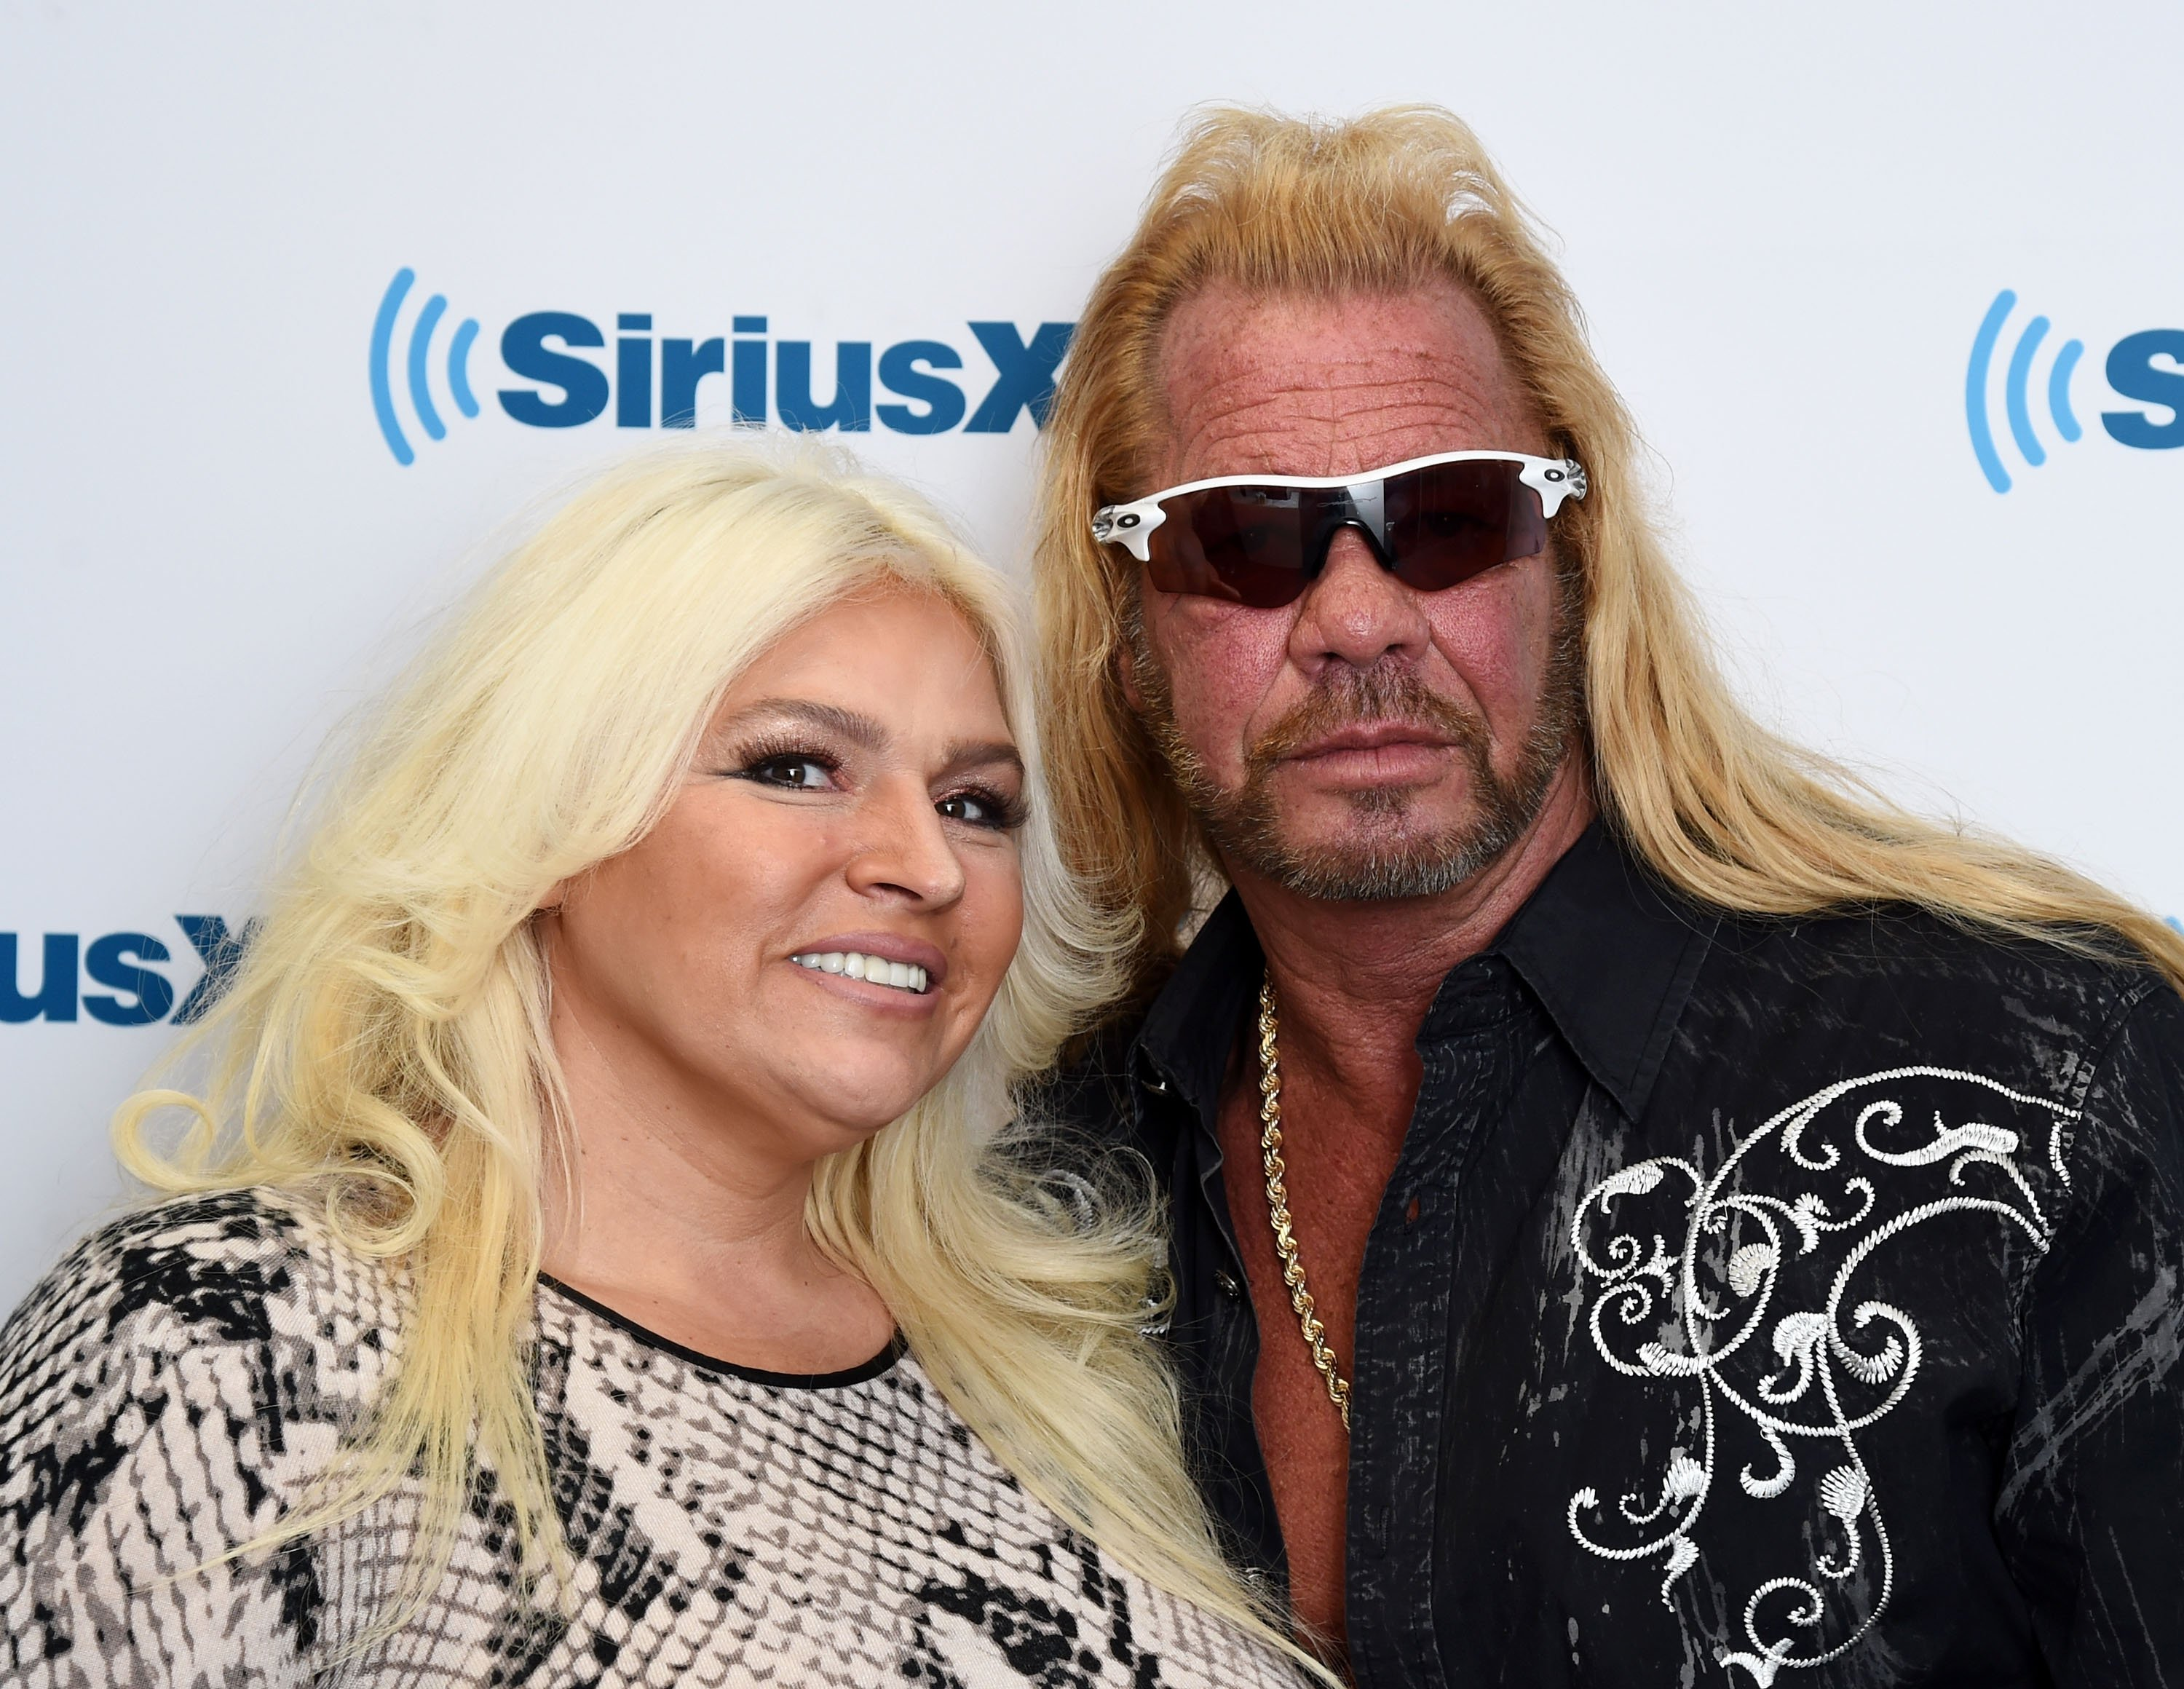 Beth Chapman and Dog the Bounty Hunter, Duane Chapman visits the SiriusXM Studios on April 24, 2015 | Photo: GettyImages